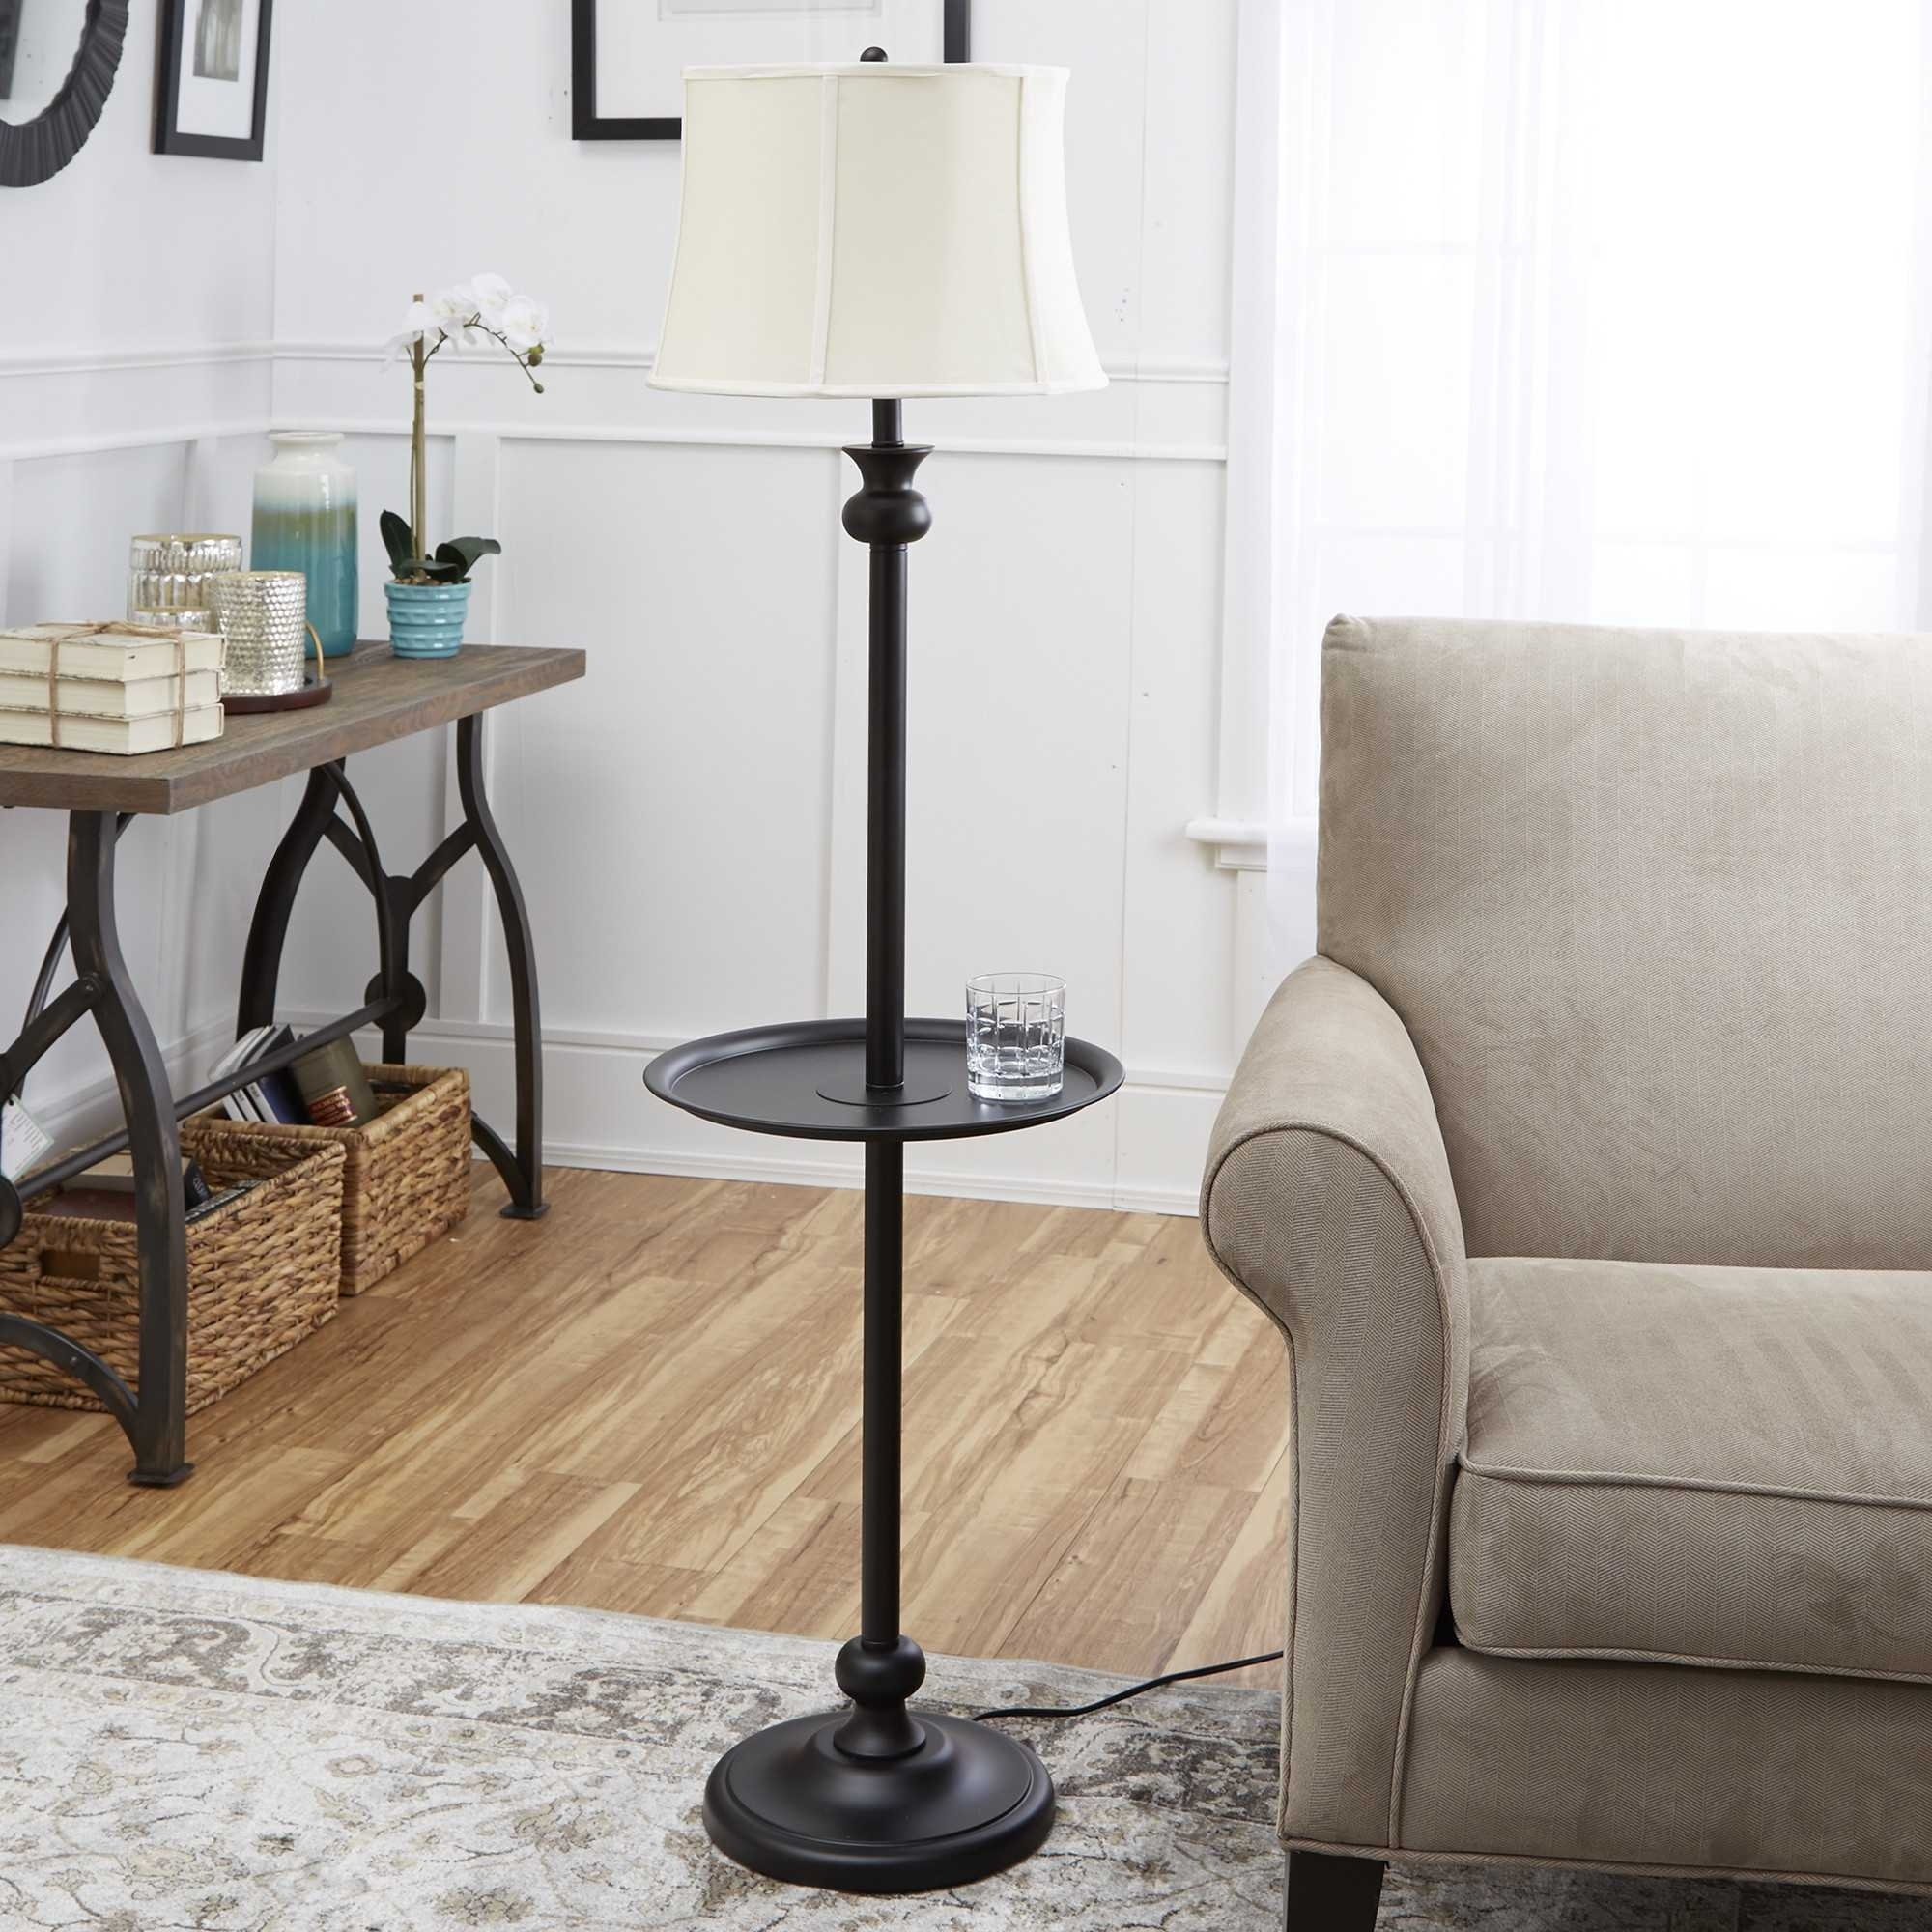 Fashionable Side Table Lamps For Bedroom Feng Shui Living Room 2018 Also Pertaining To Living Room Coffee Table Lamps (View 10 of 20)